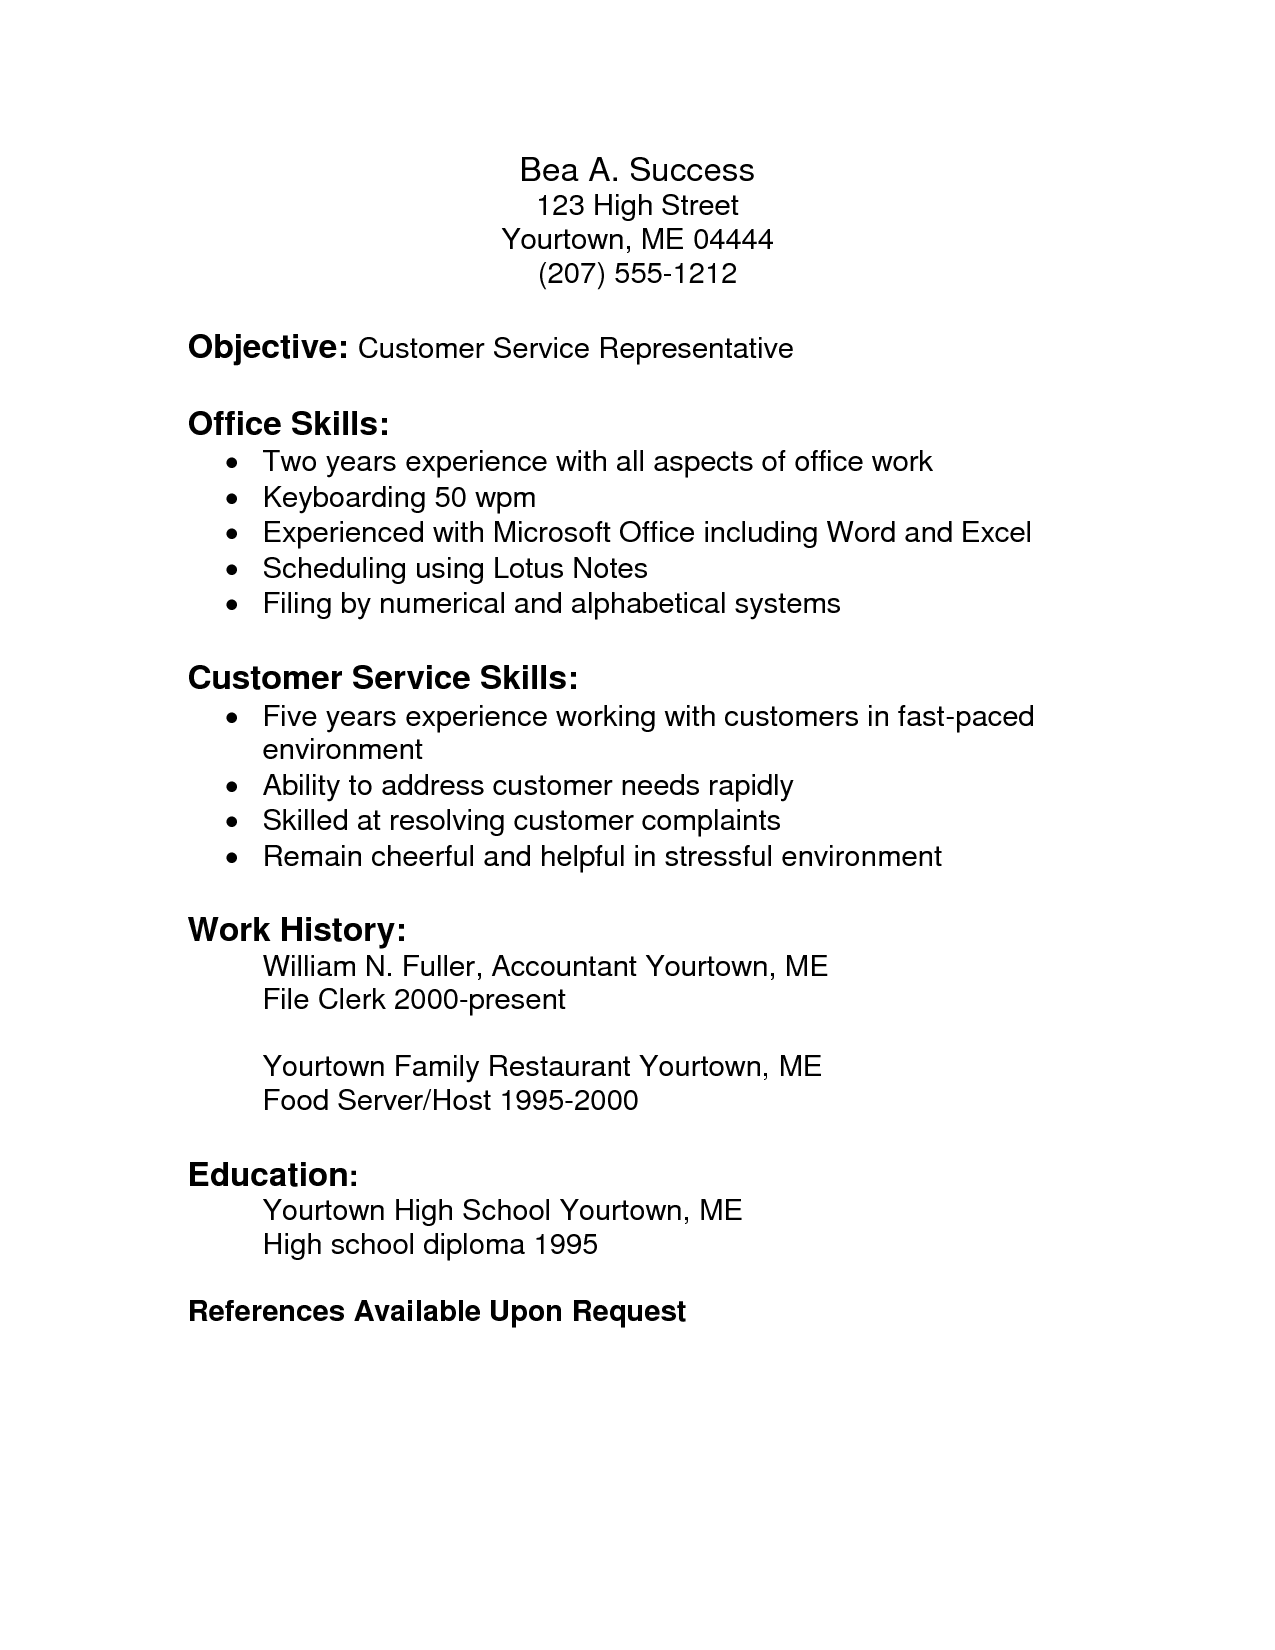 Copy Paste Resume Templates Customer Service Skills Resume Examples  Sample Resume Center